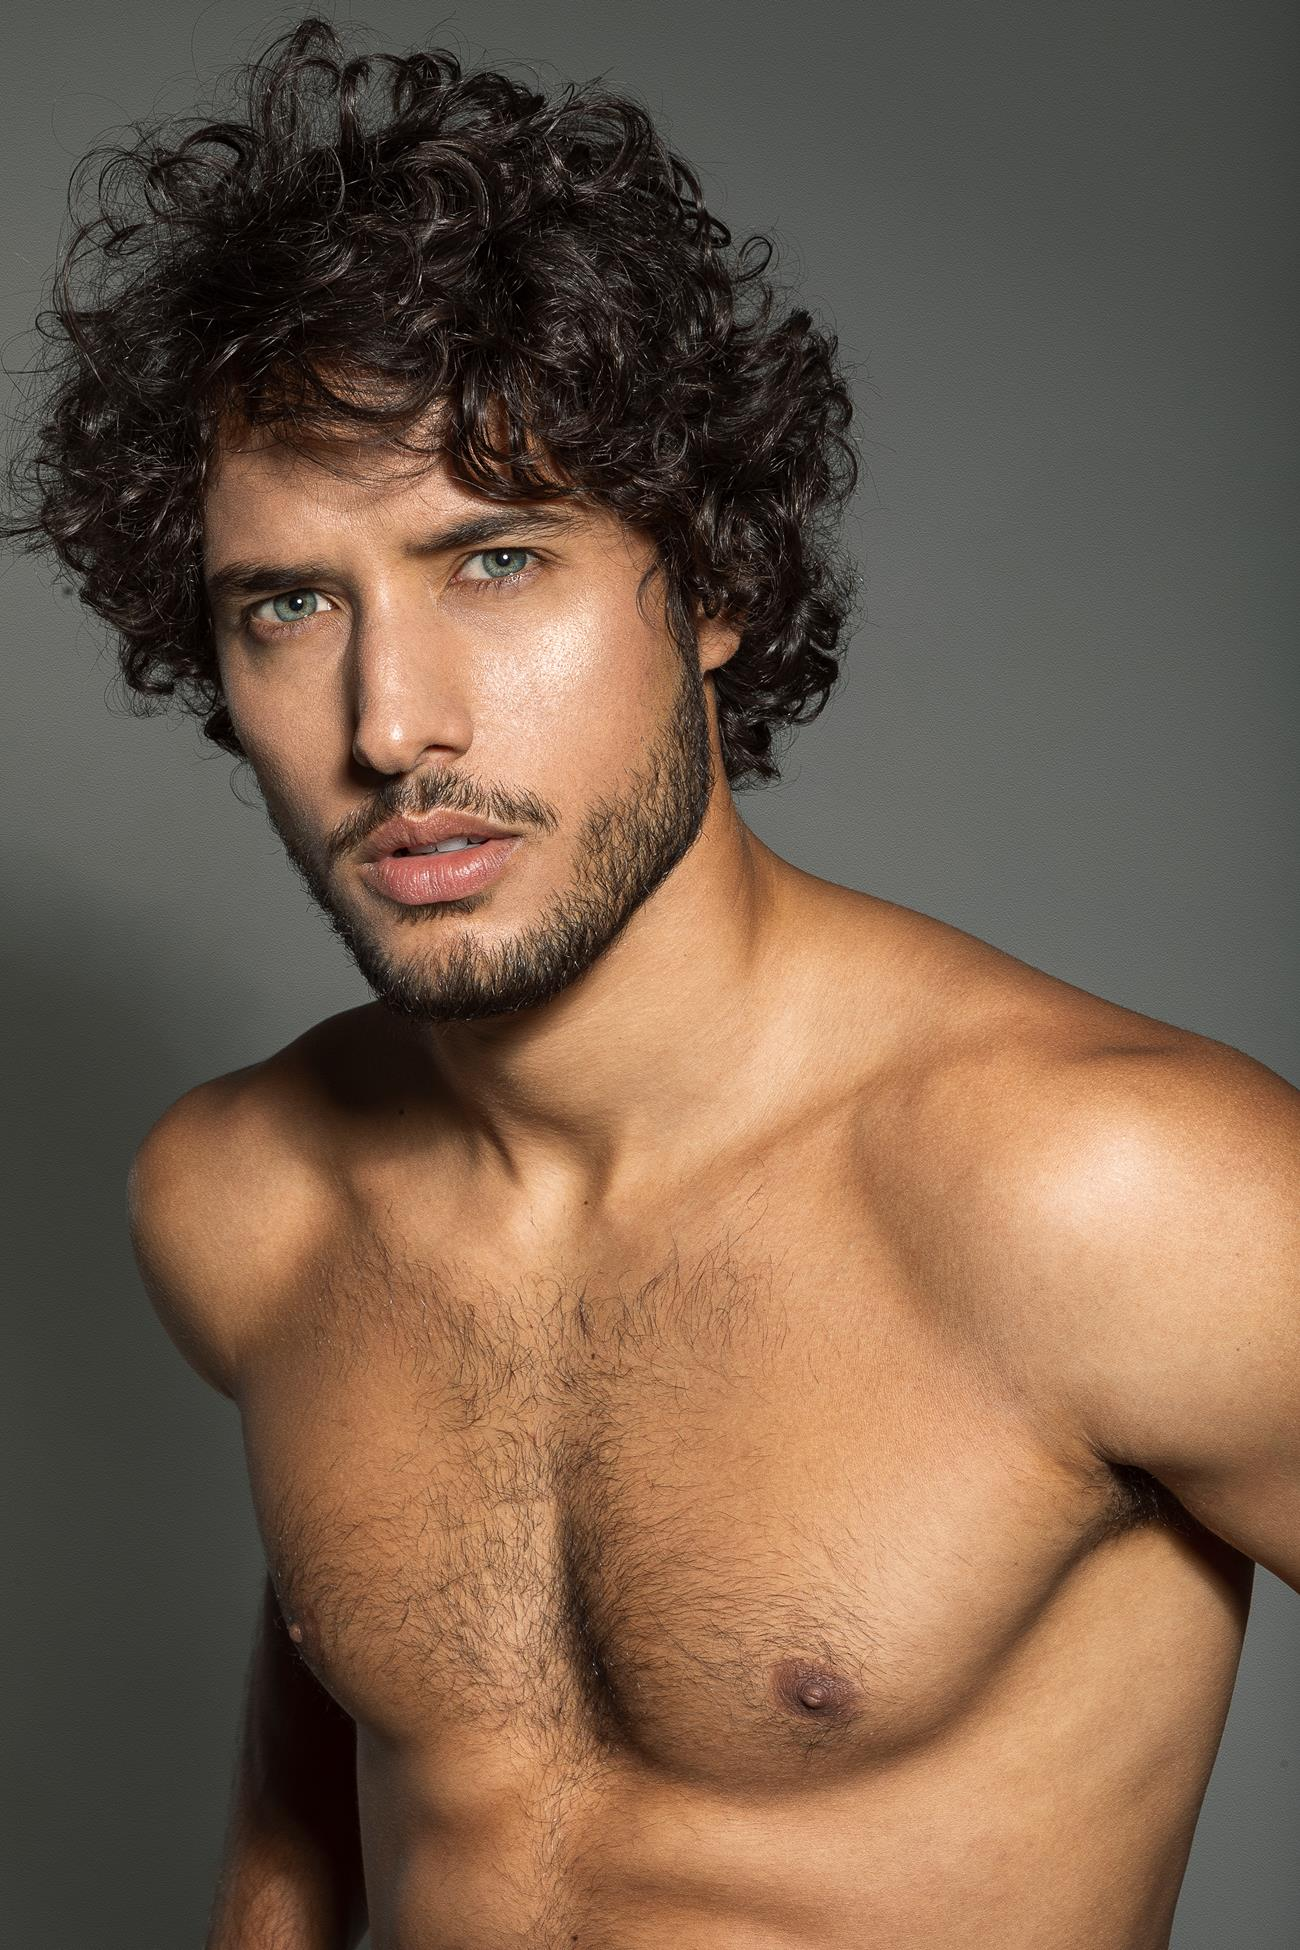 Rodrigo Lopes by Caio Sanfelice for Brazilian Male Model